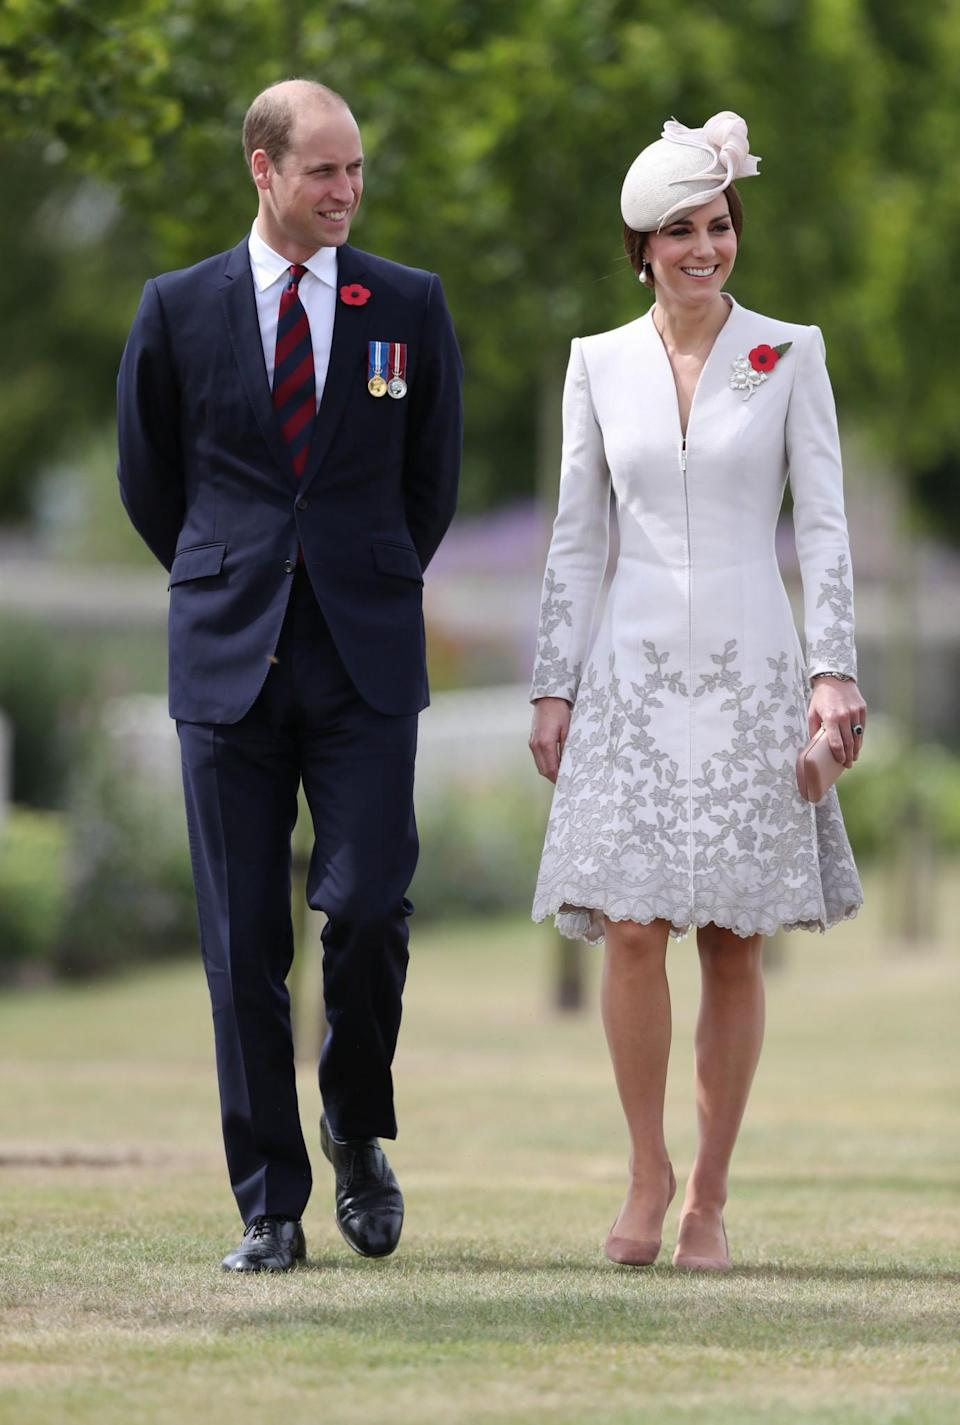 <p>The Duke and Duchess of Cambridge visit the final resting place of 5,000 World War One servicemen for the 100-year anniversary of Passchendaele. For the occasion, the Duchess wore an embroidered coat dress with a matching hat and a poppy brooch. <em>[Photo: PA]</em> </p>